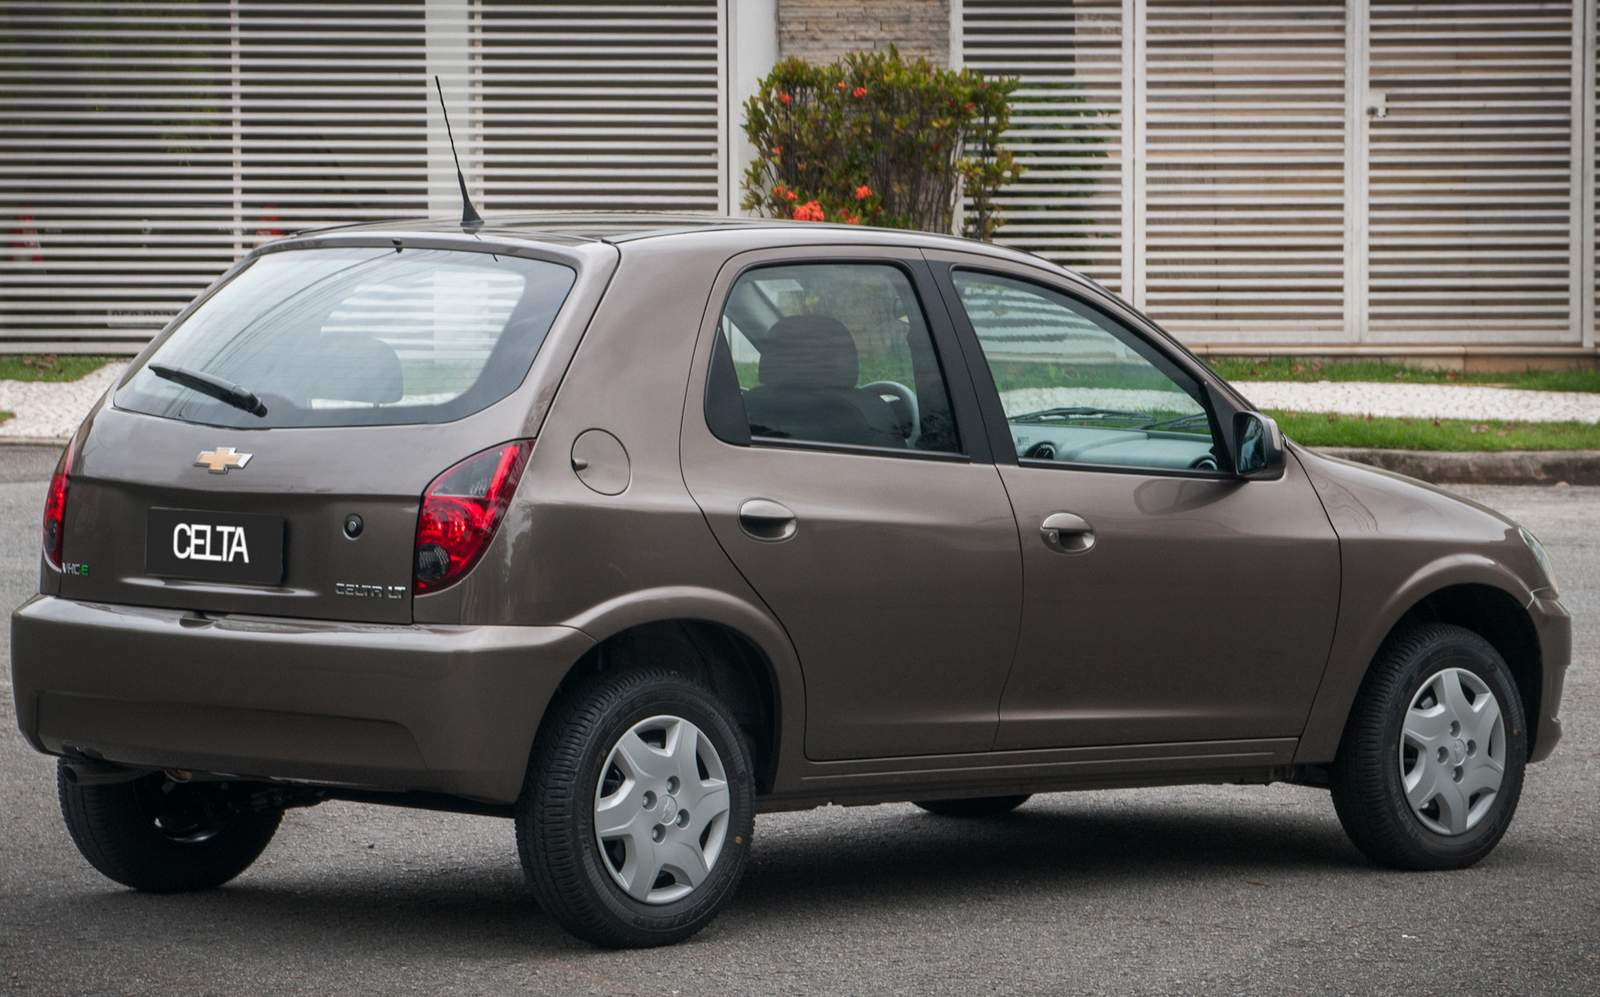 Chevrolet celta 2008 photo - 2